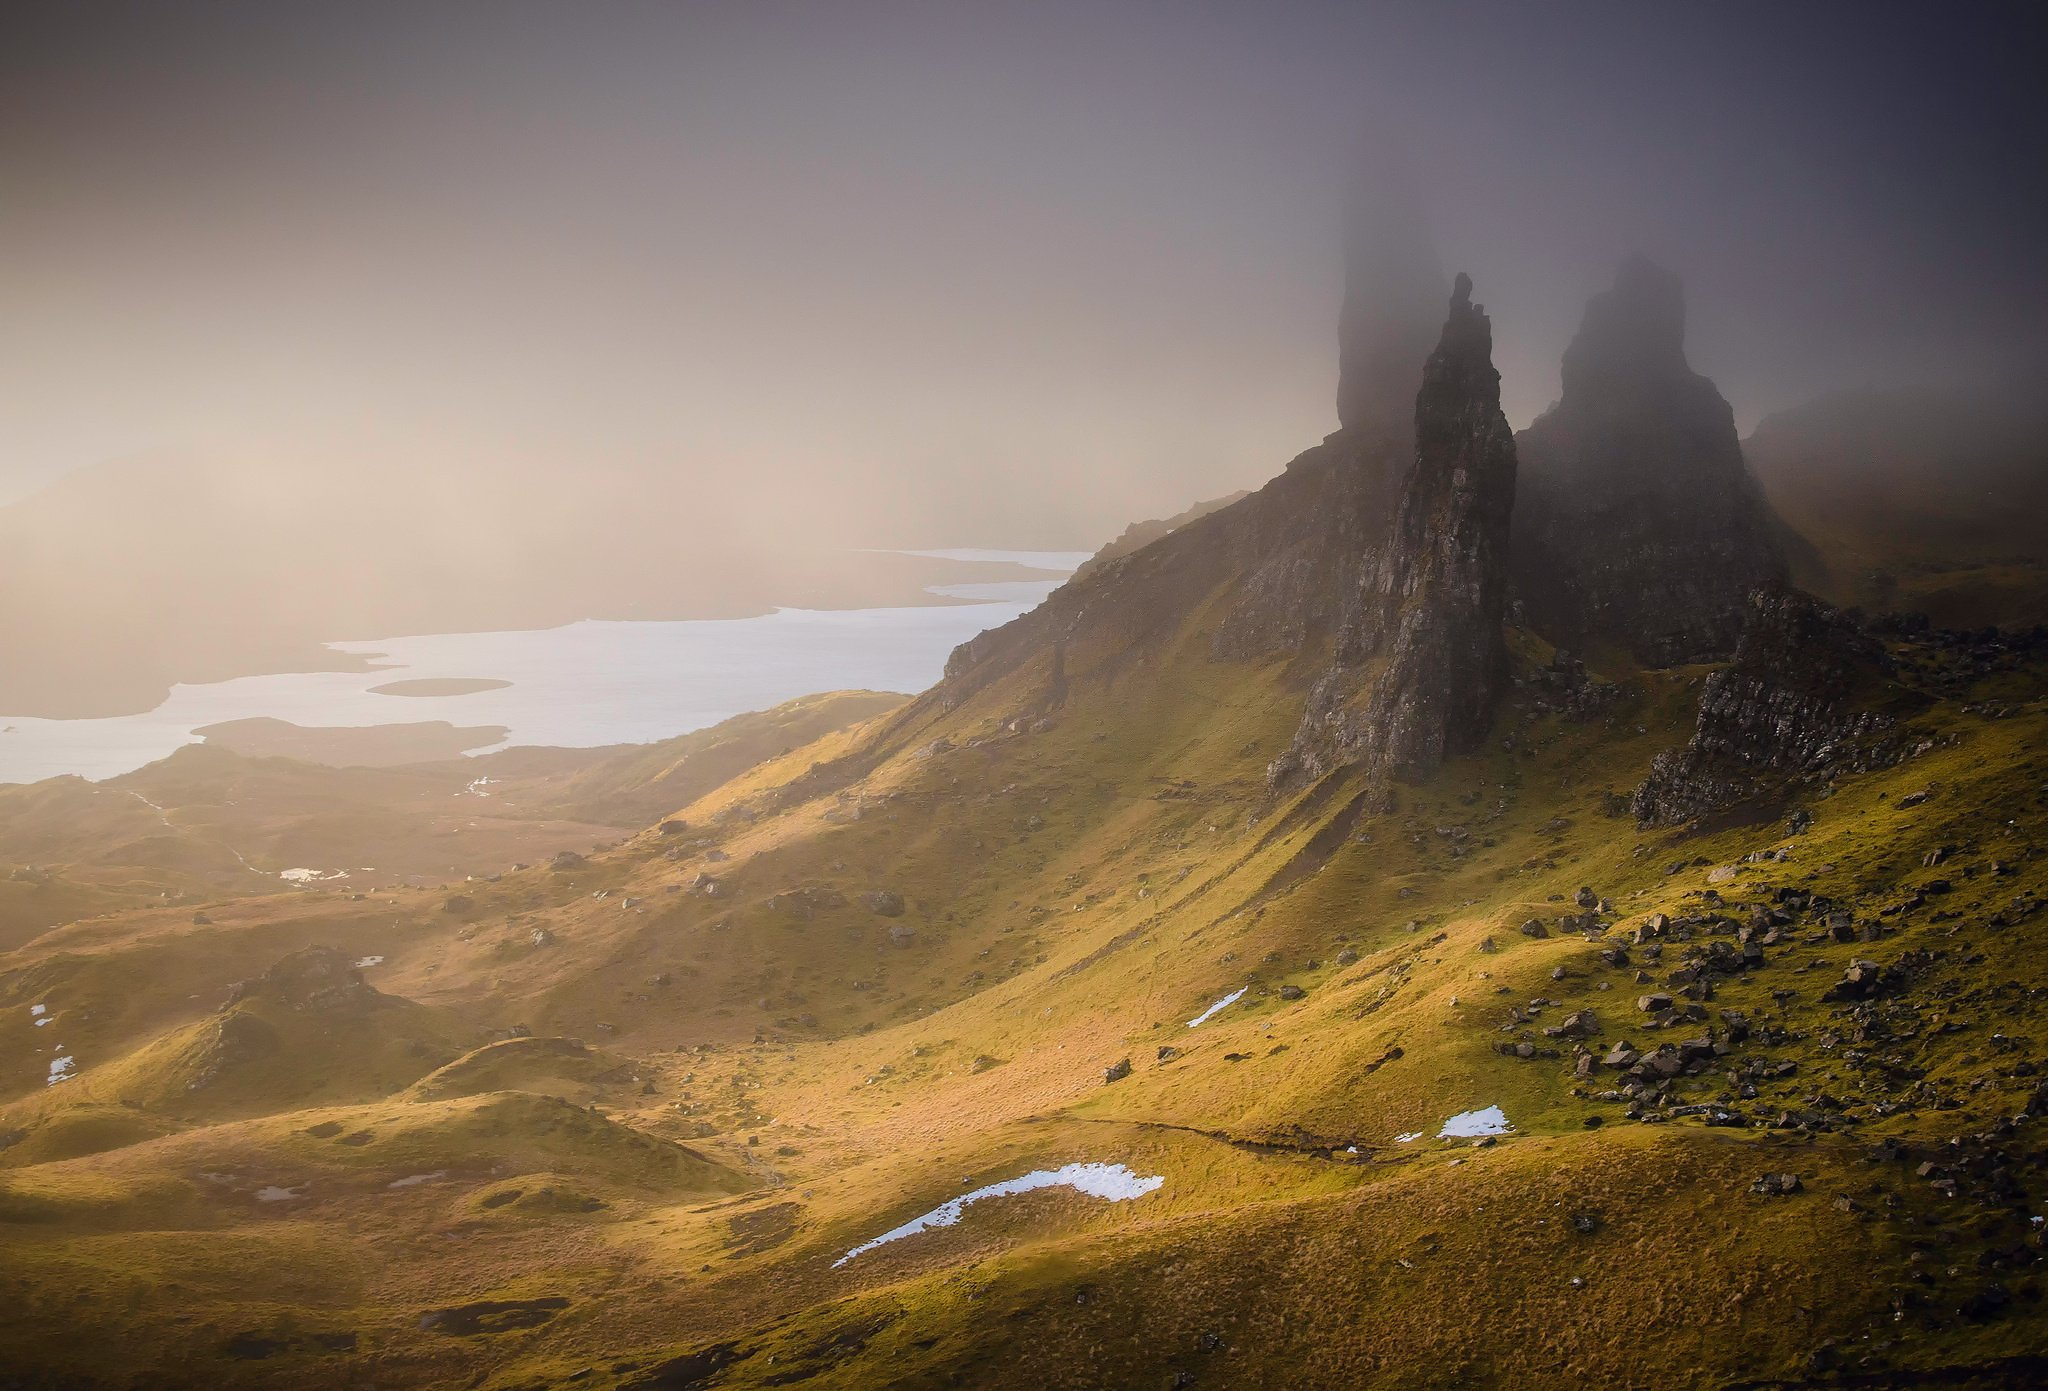 Mountains united kingdom scotland fog wallpaper 2048x1391 416351 wallpaperup - Walpepar photos ...